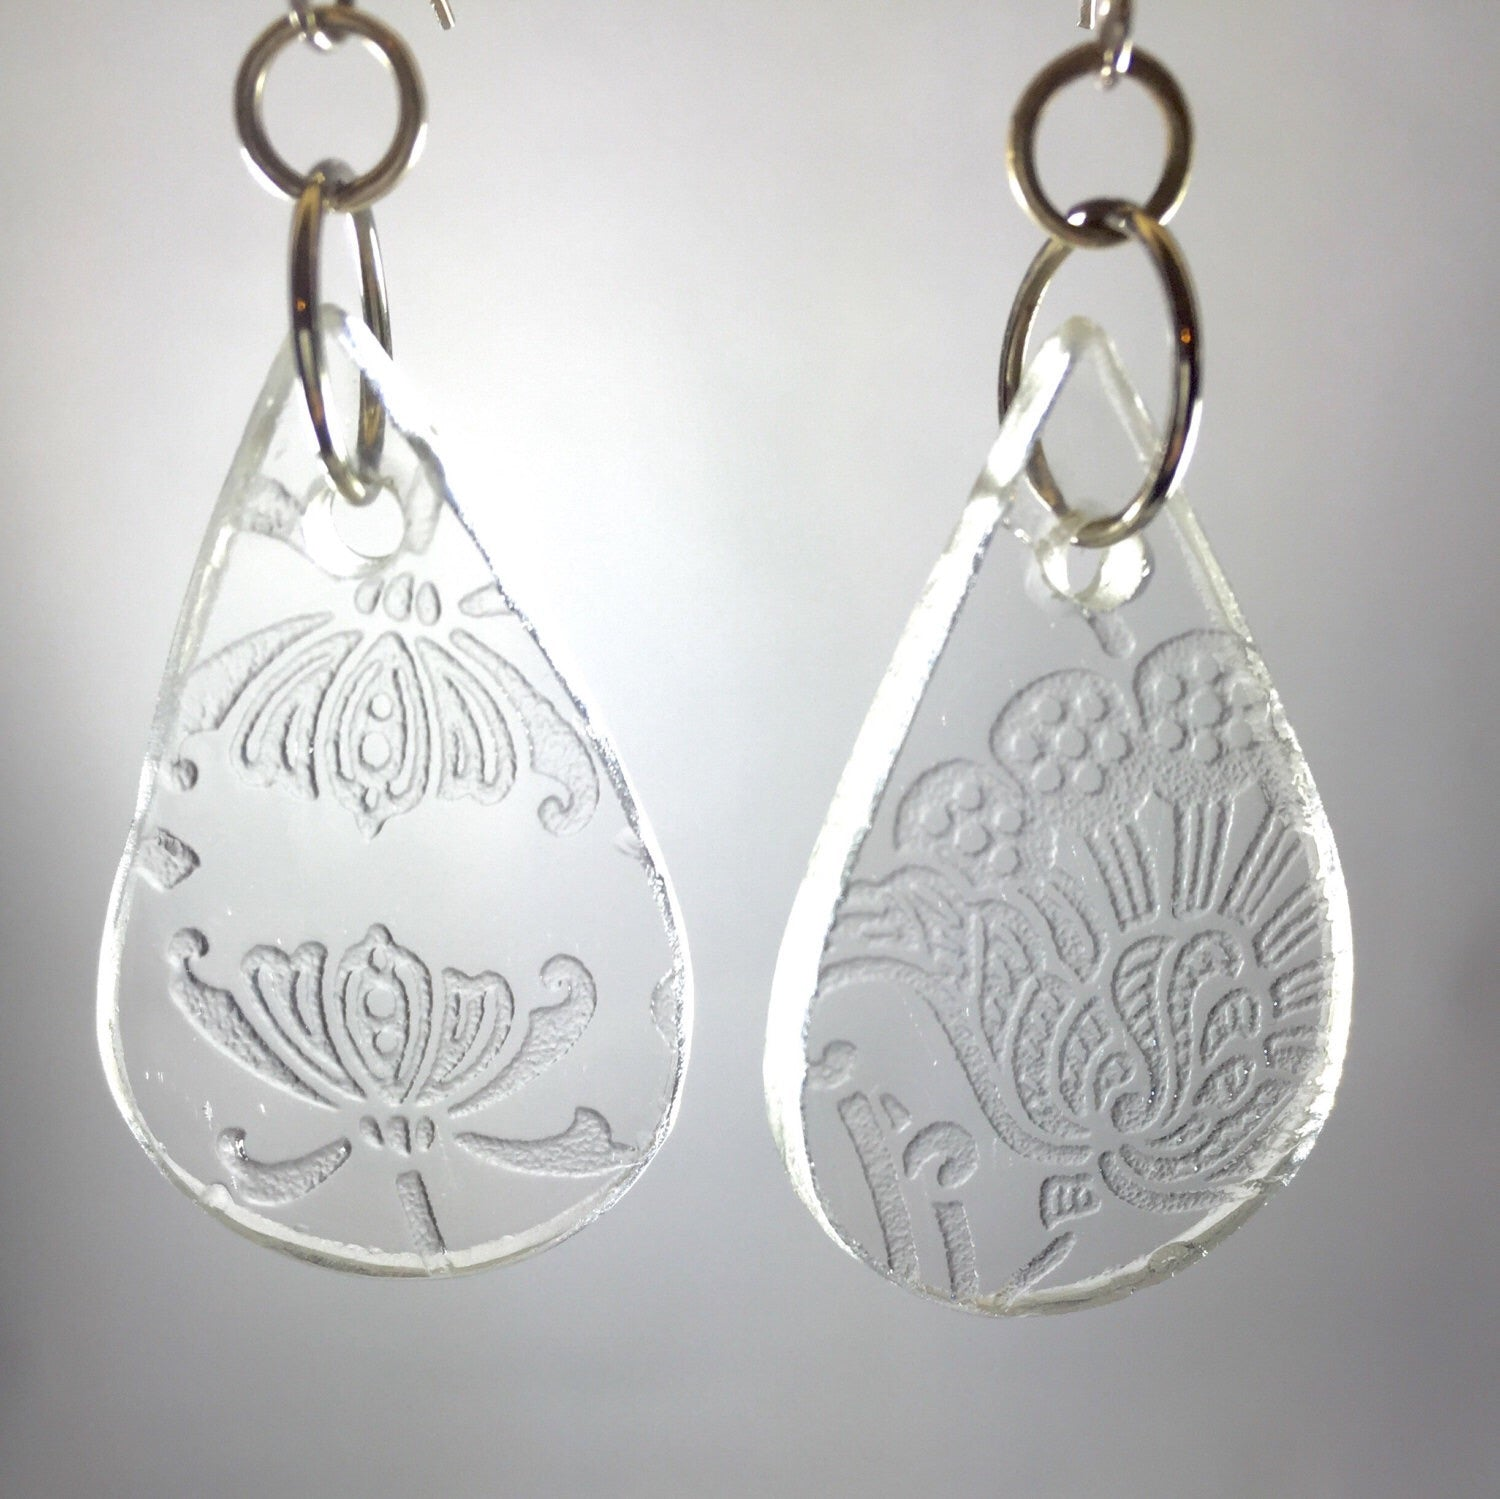 Christmas gift ideas- Depression glass earrings